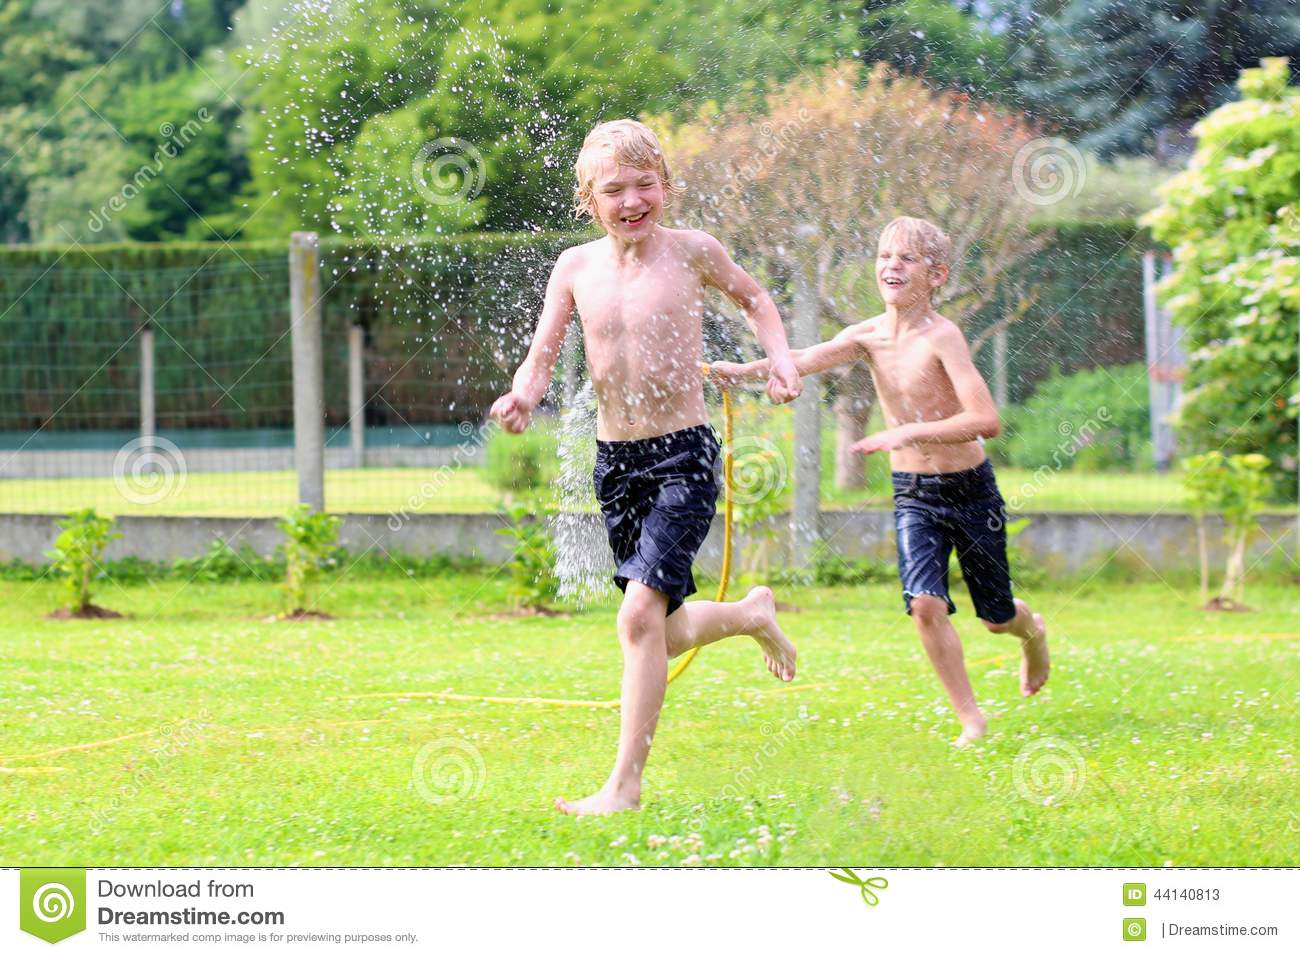 Two brothers playing with water hose in the garden